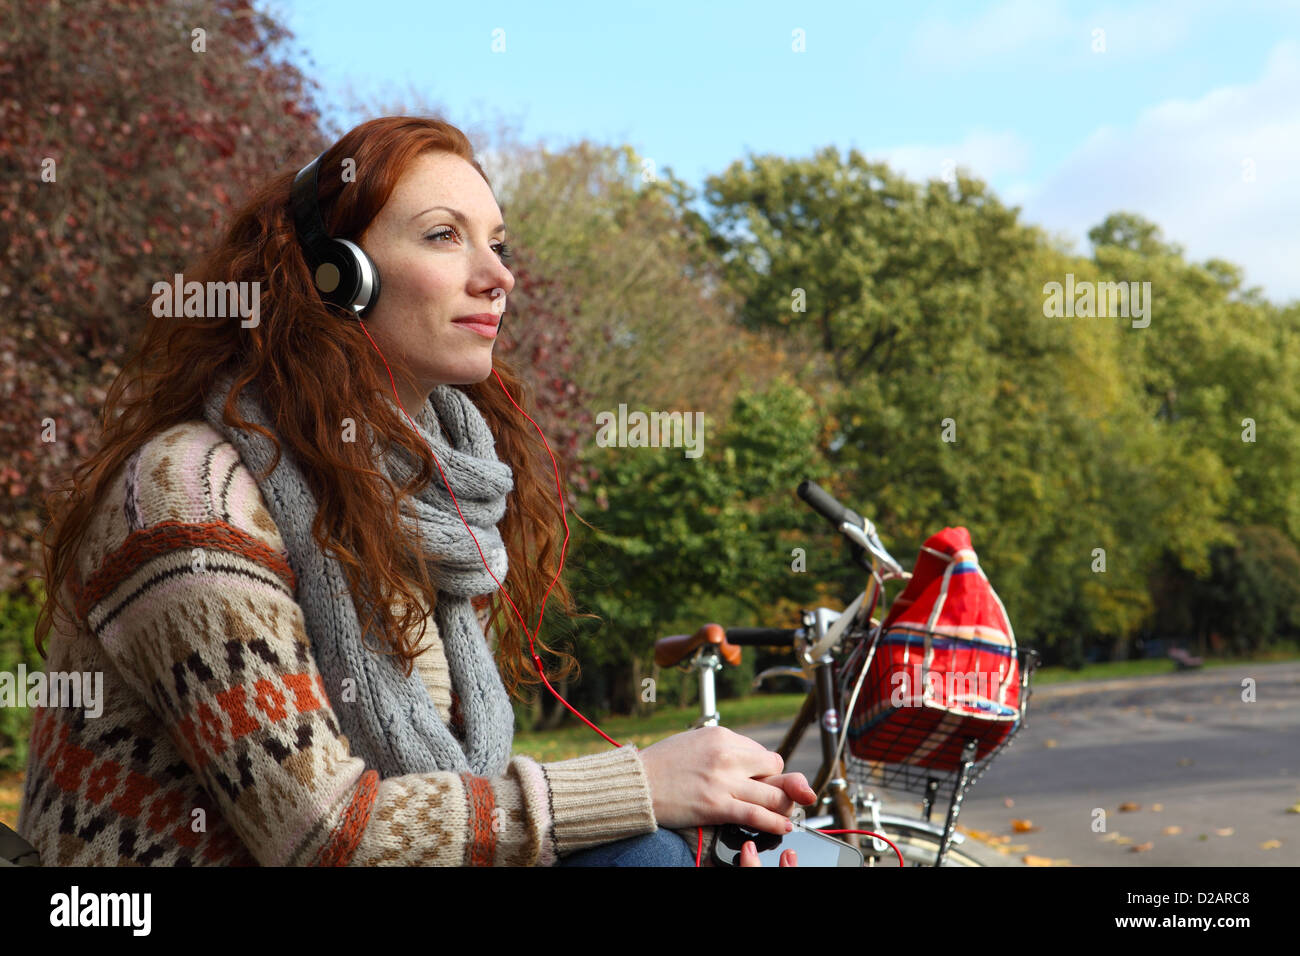 Woman listening to headphones in park - Stock Image